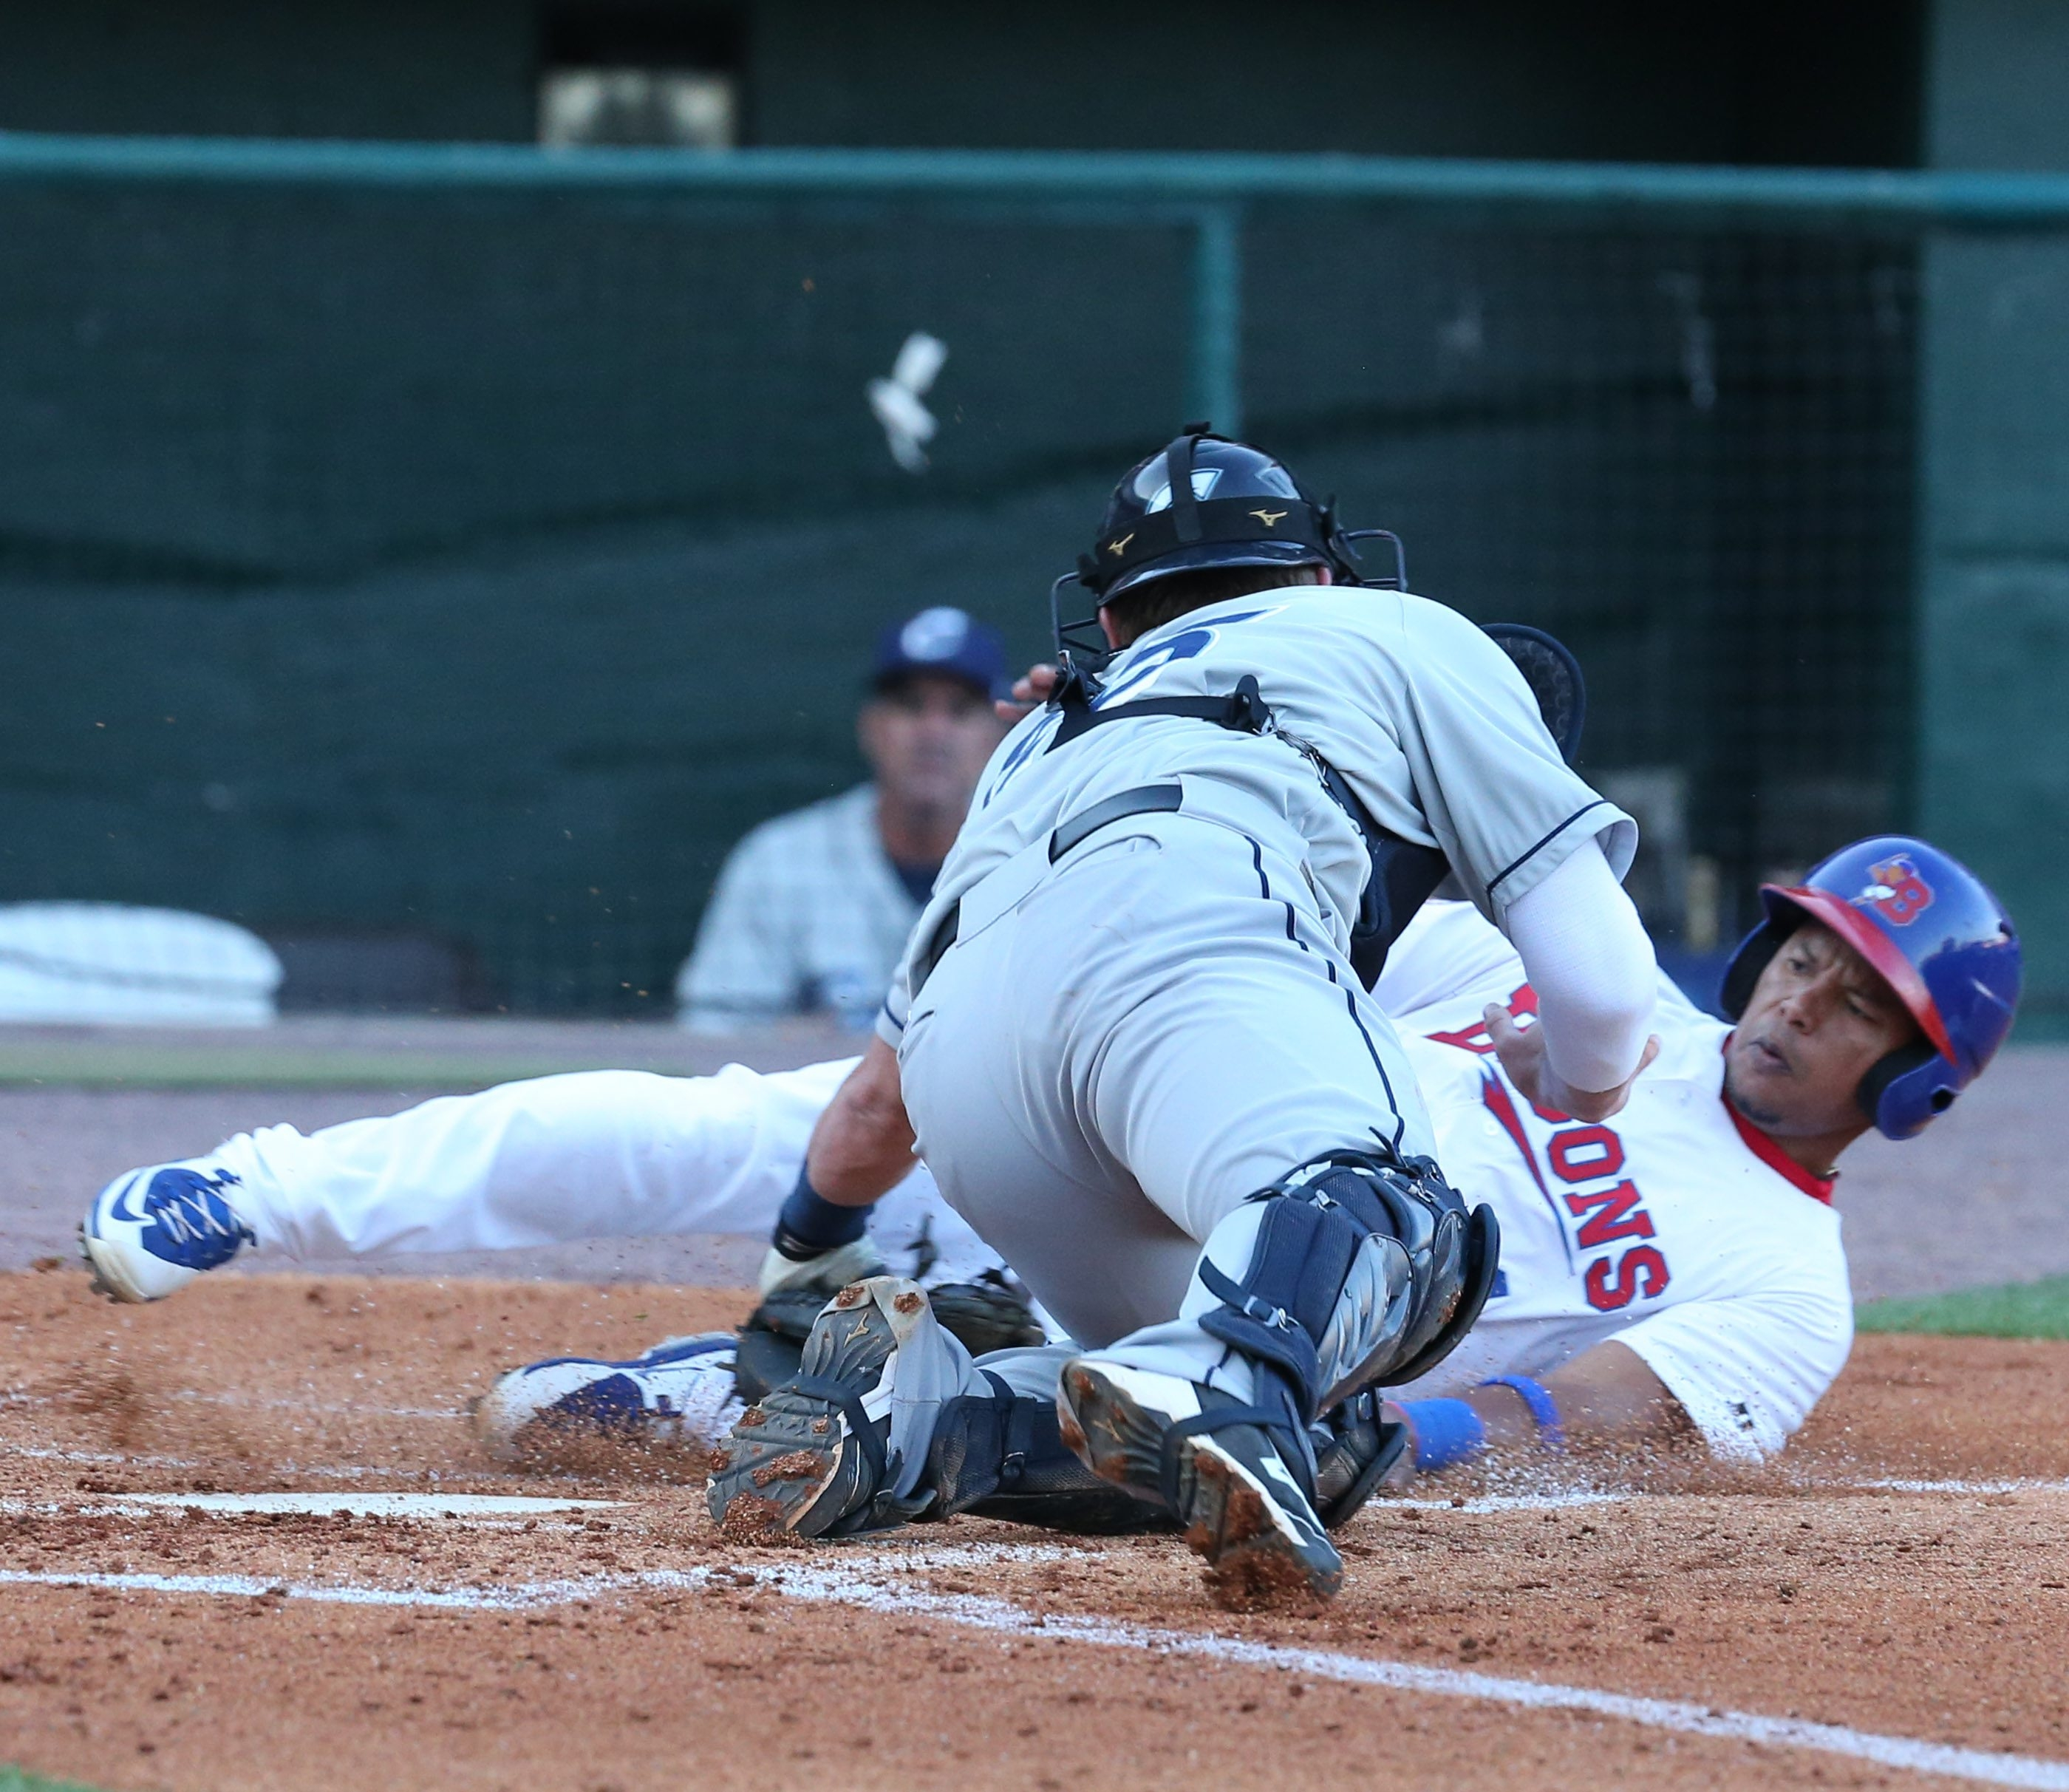 Buffalo's Ramon Santiago is tagged out by Columbus catcher Adam Moore at home plate in the second inning of Thursday's game.